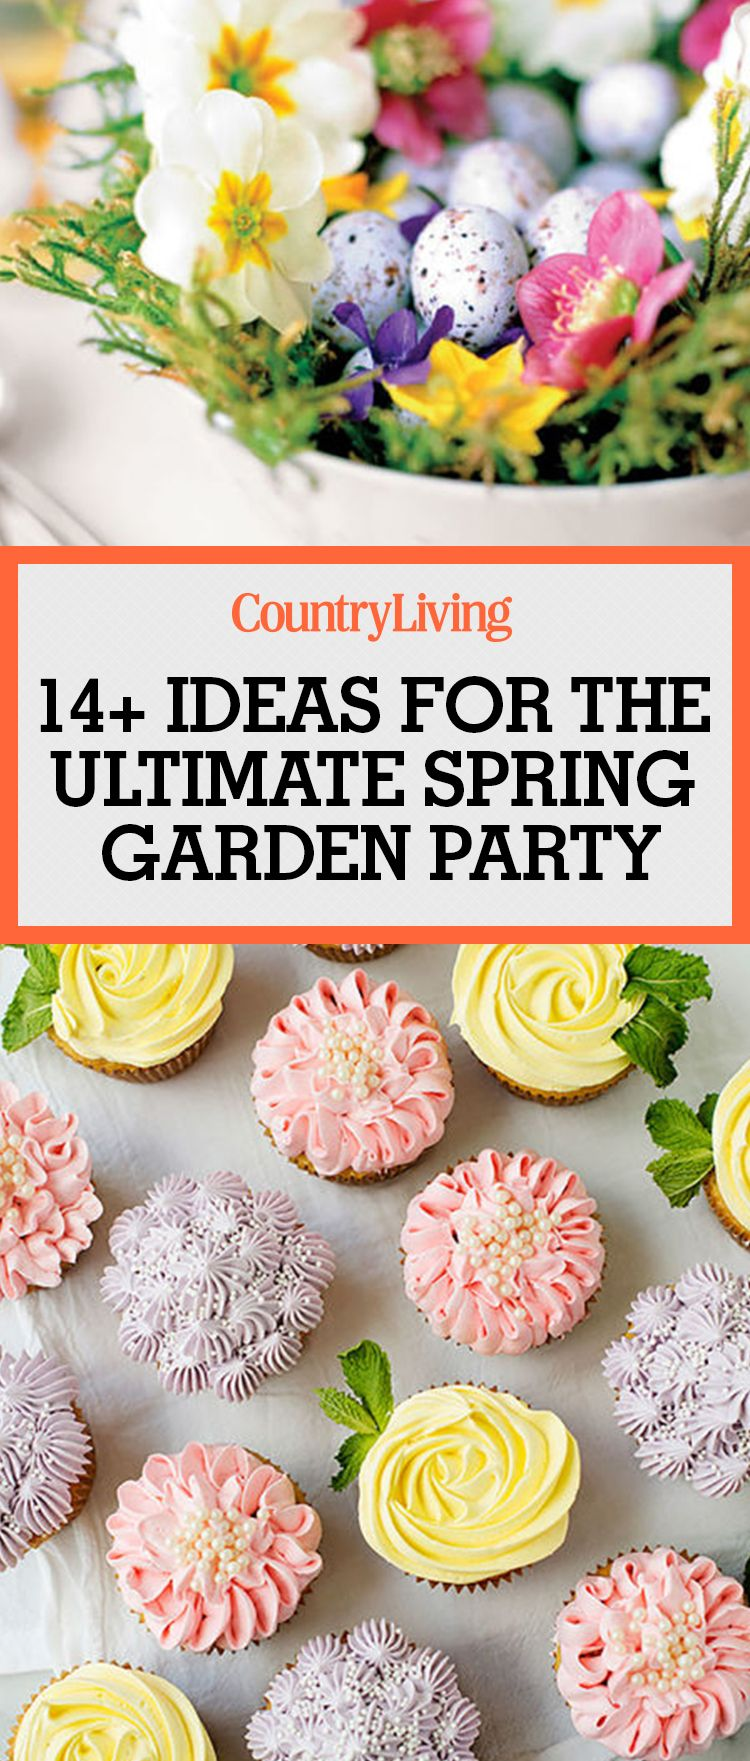 18 Garden Party Decorations And Ideas   How To Host A Garden Tea Party This  Spring